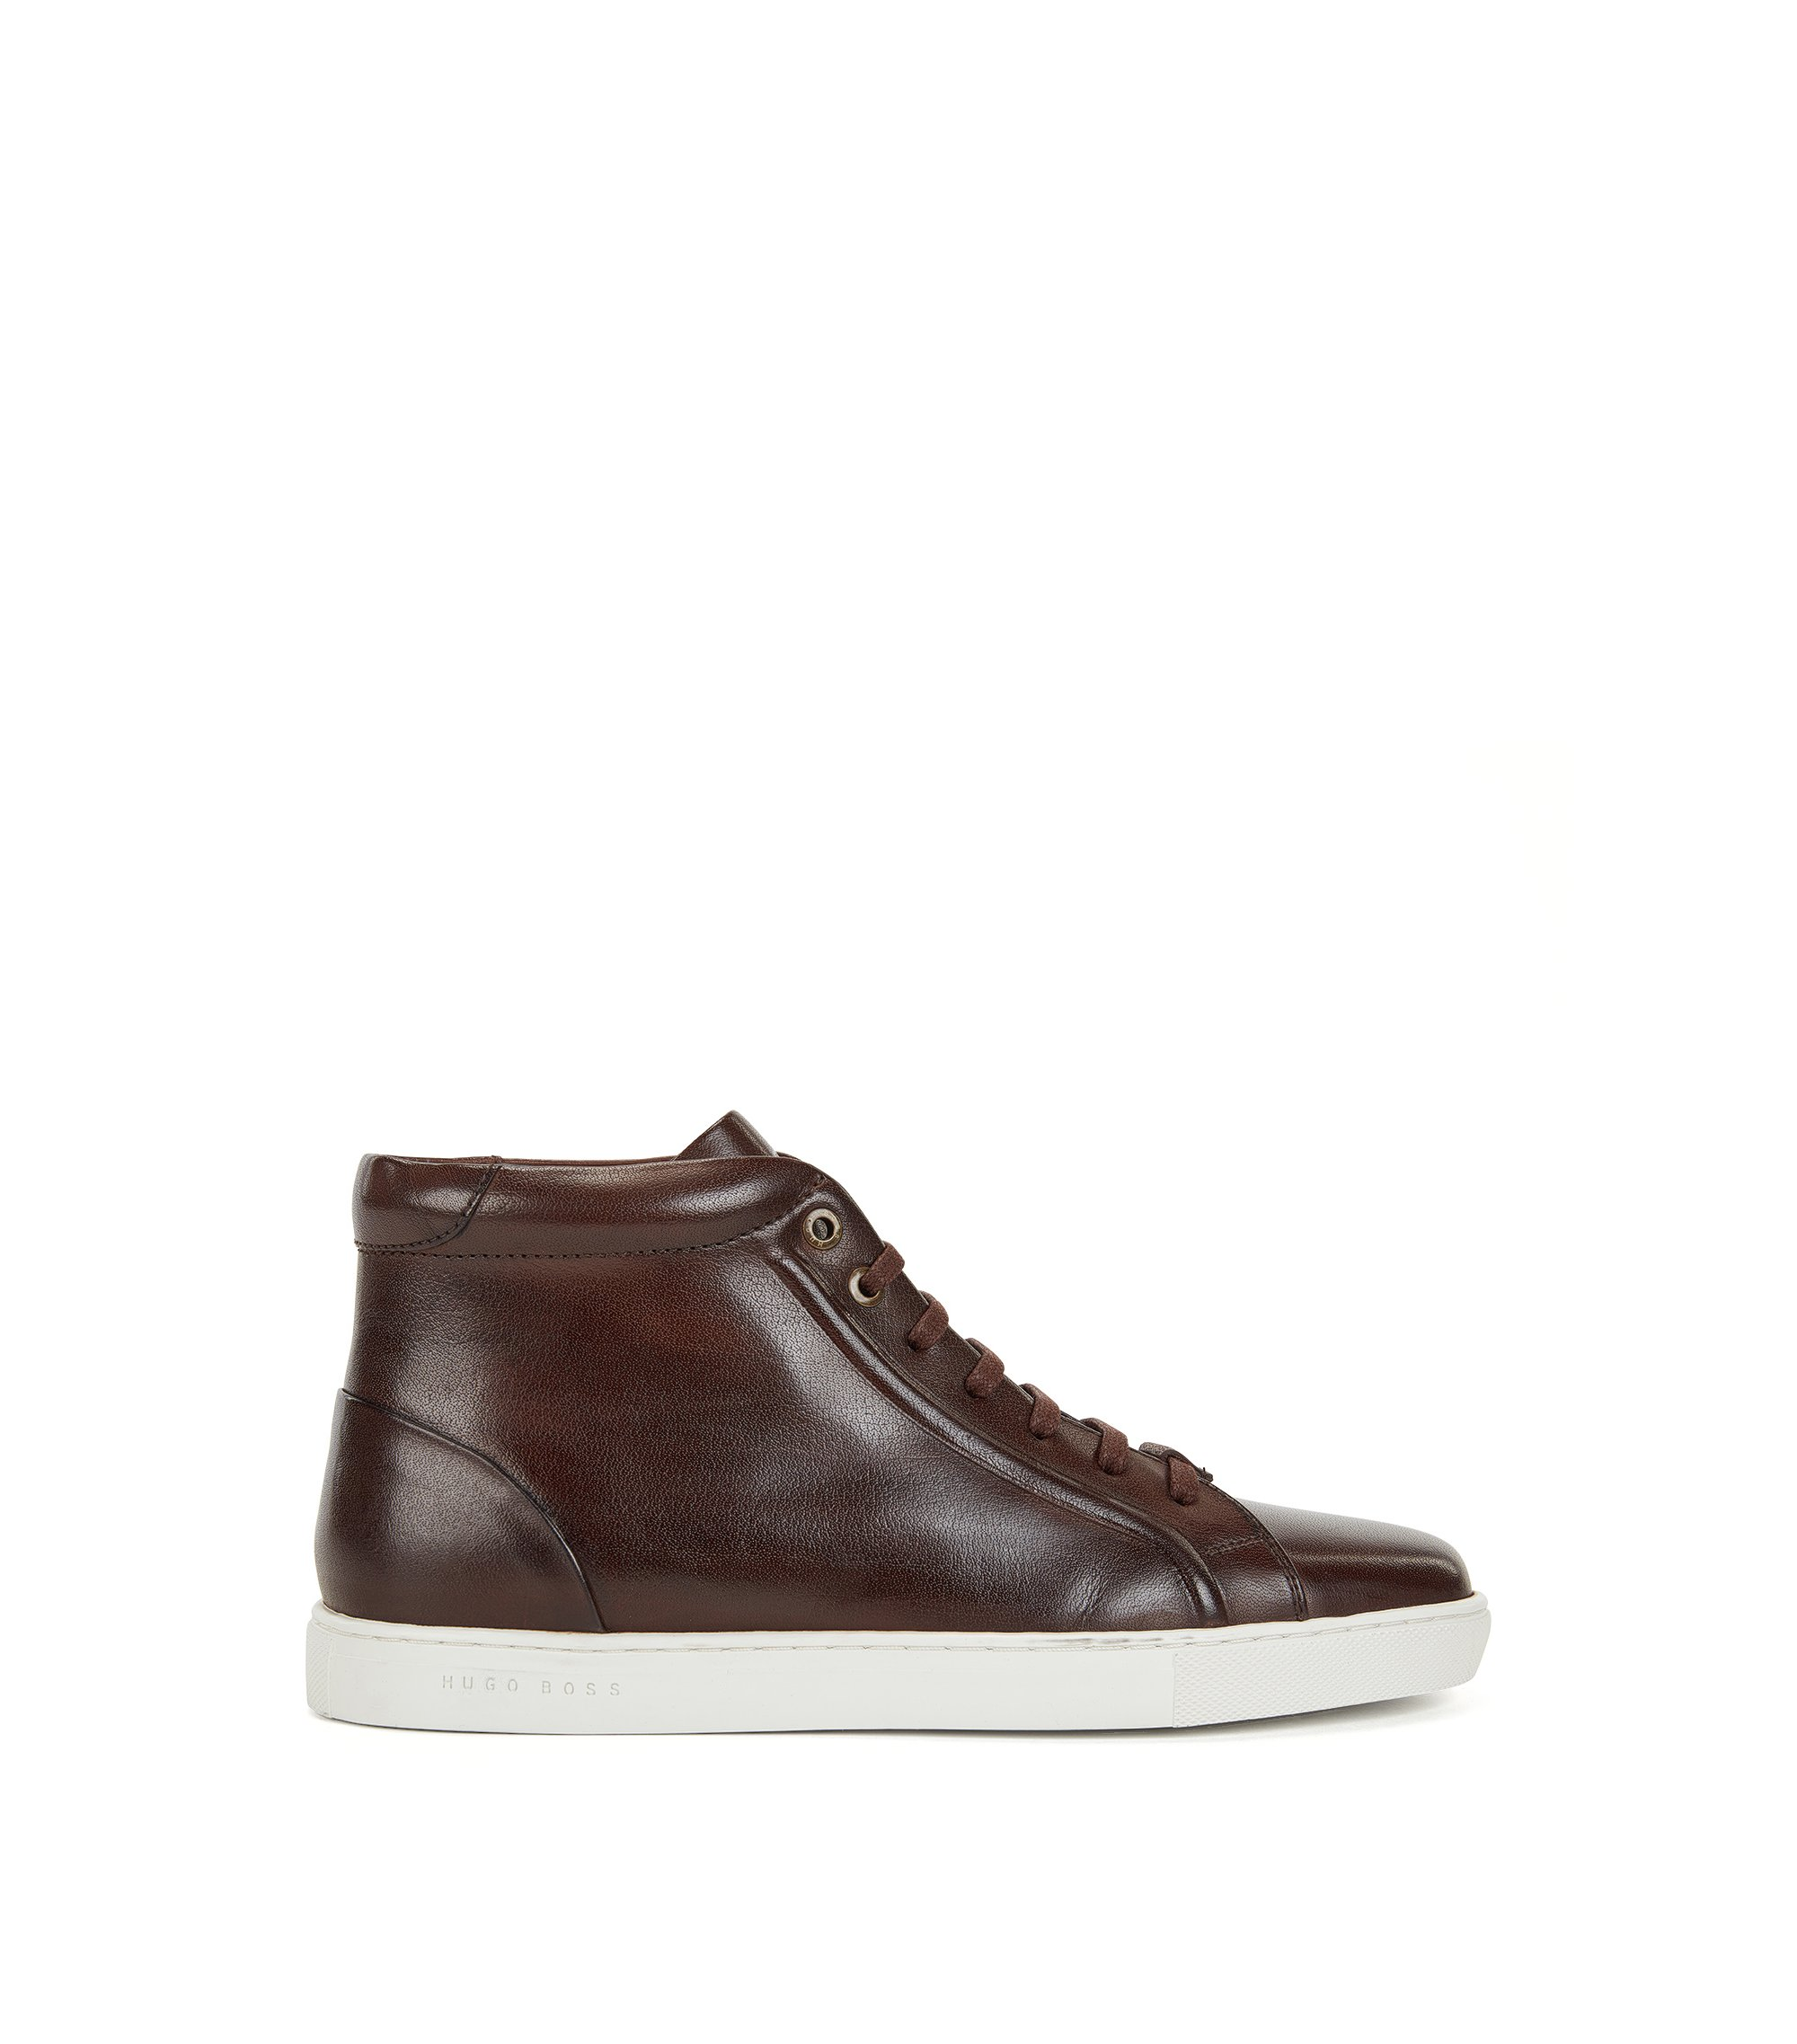 Buffalo Leather High-Top Sneaker | Tribute Hito Bu, Dark Brown